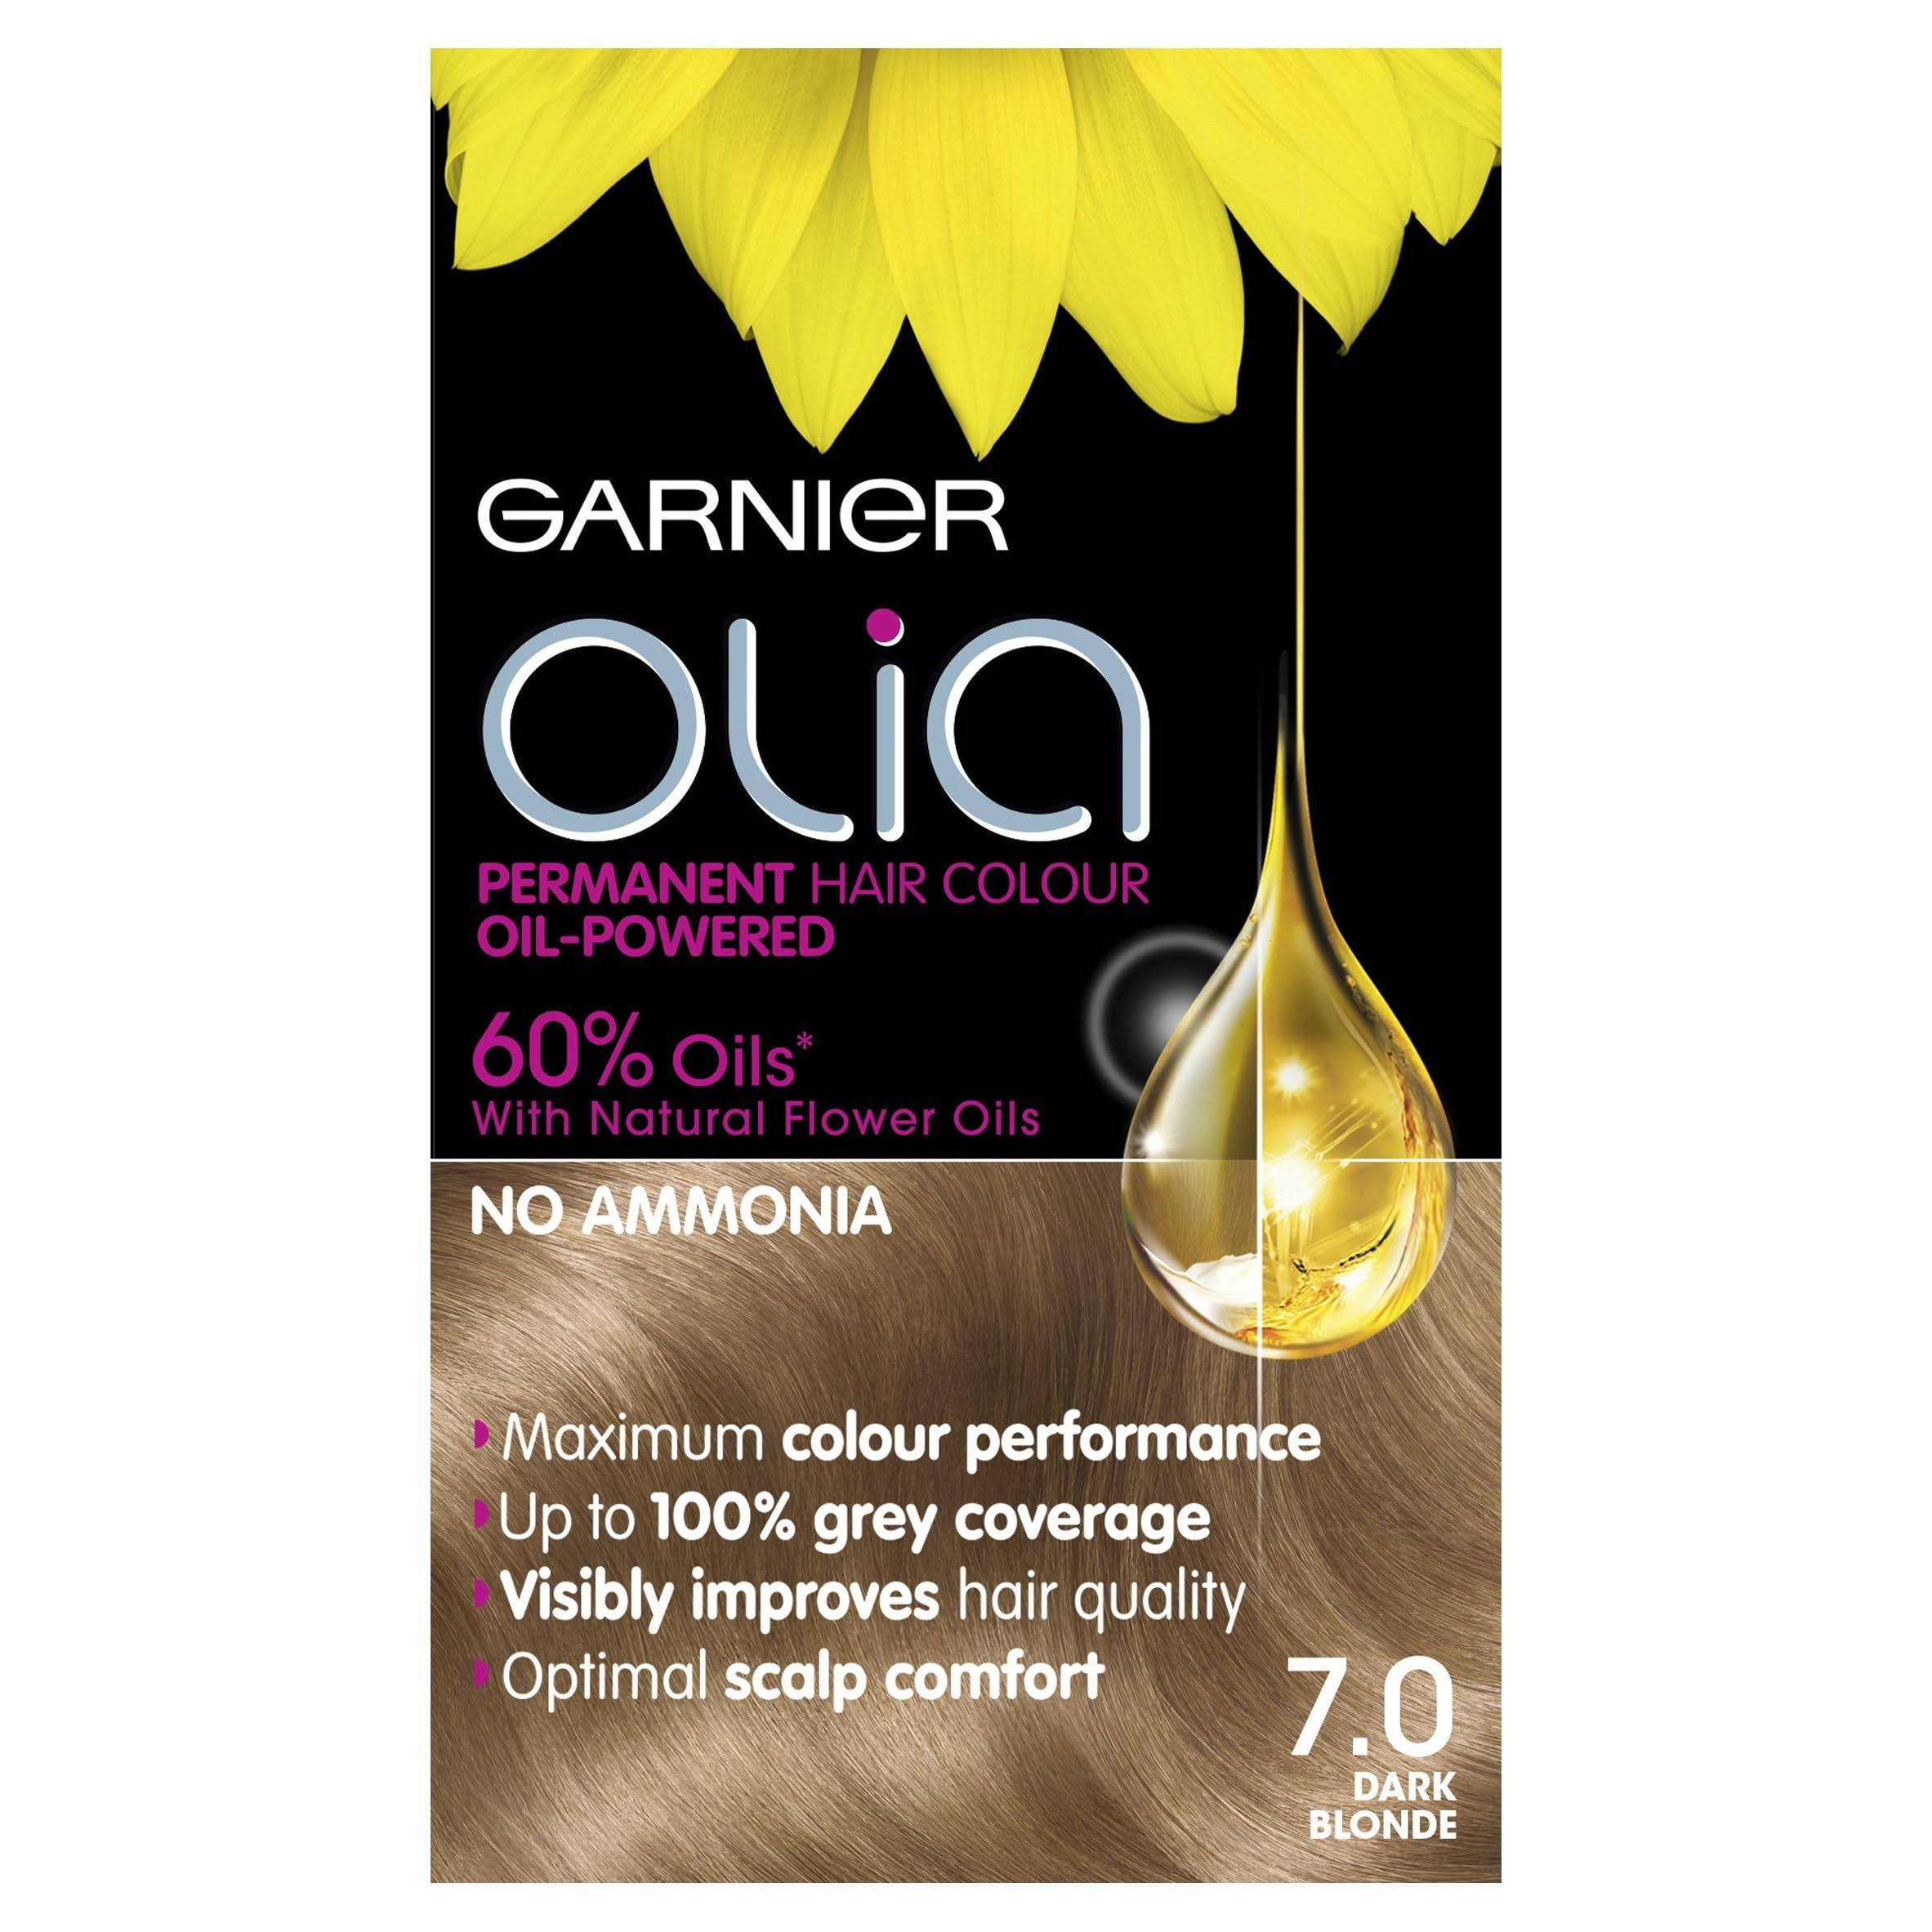 Garnier Olia Permanent Hair Colour - 7.0 Dark Blonde